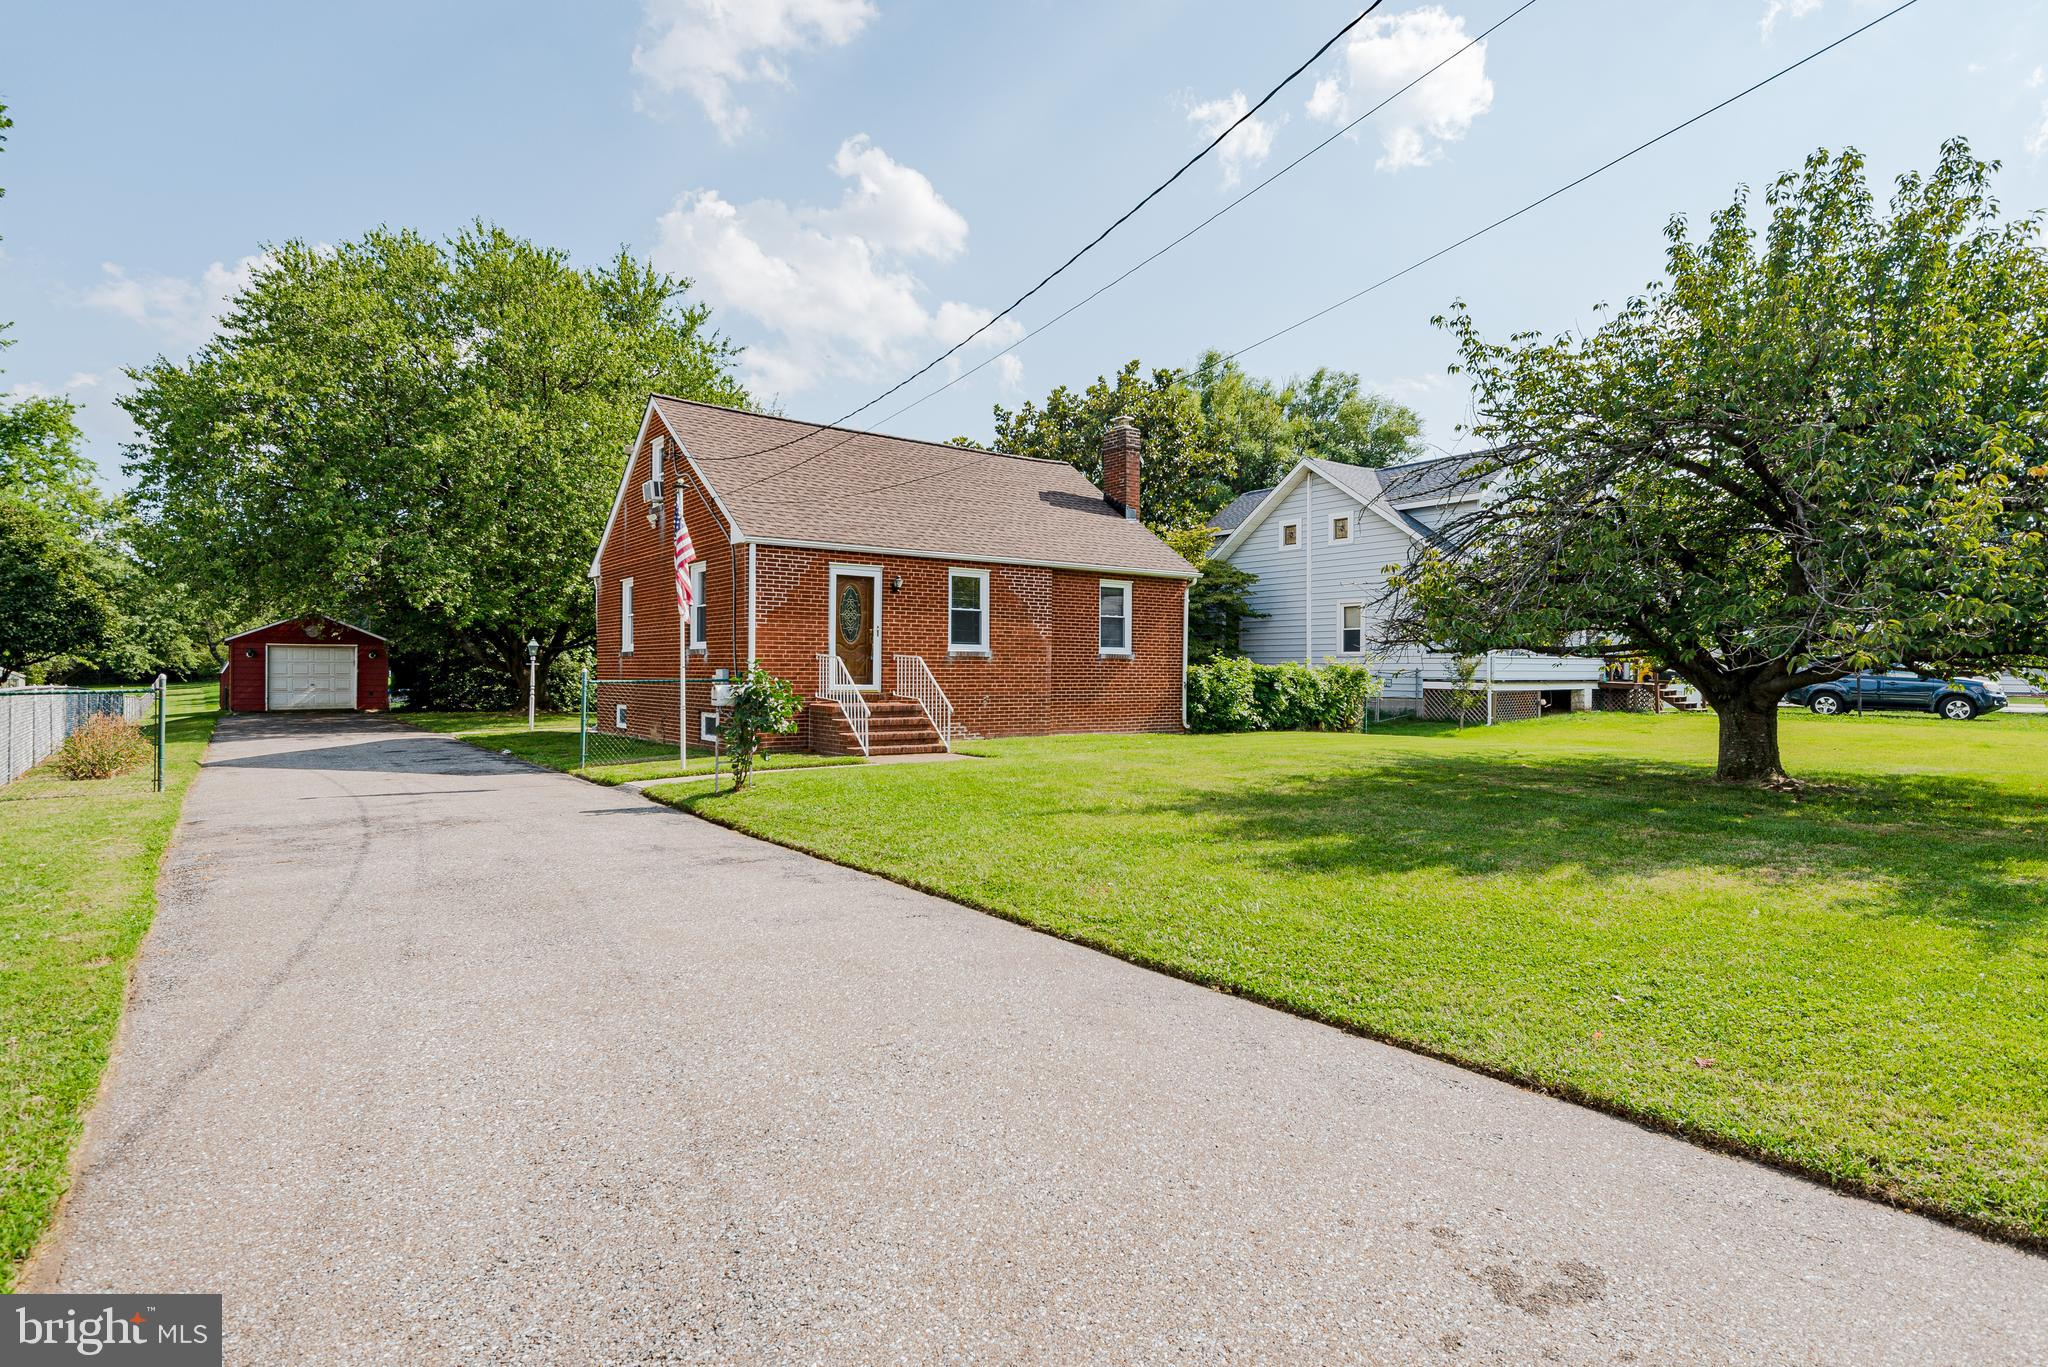 HUGE 1 ACRE PROPERTY !!!!  2240 SQUARE FEET OF LIVING SPACE!!!  RENOVATED HOME!!!  NEW ROOF!!!  NEW